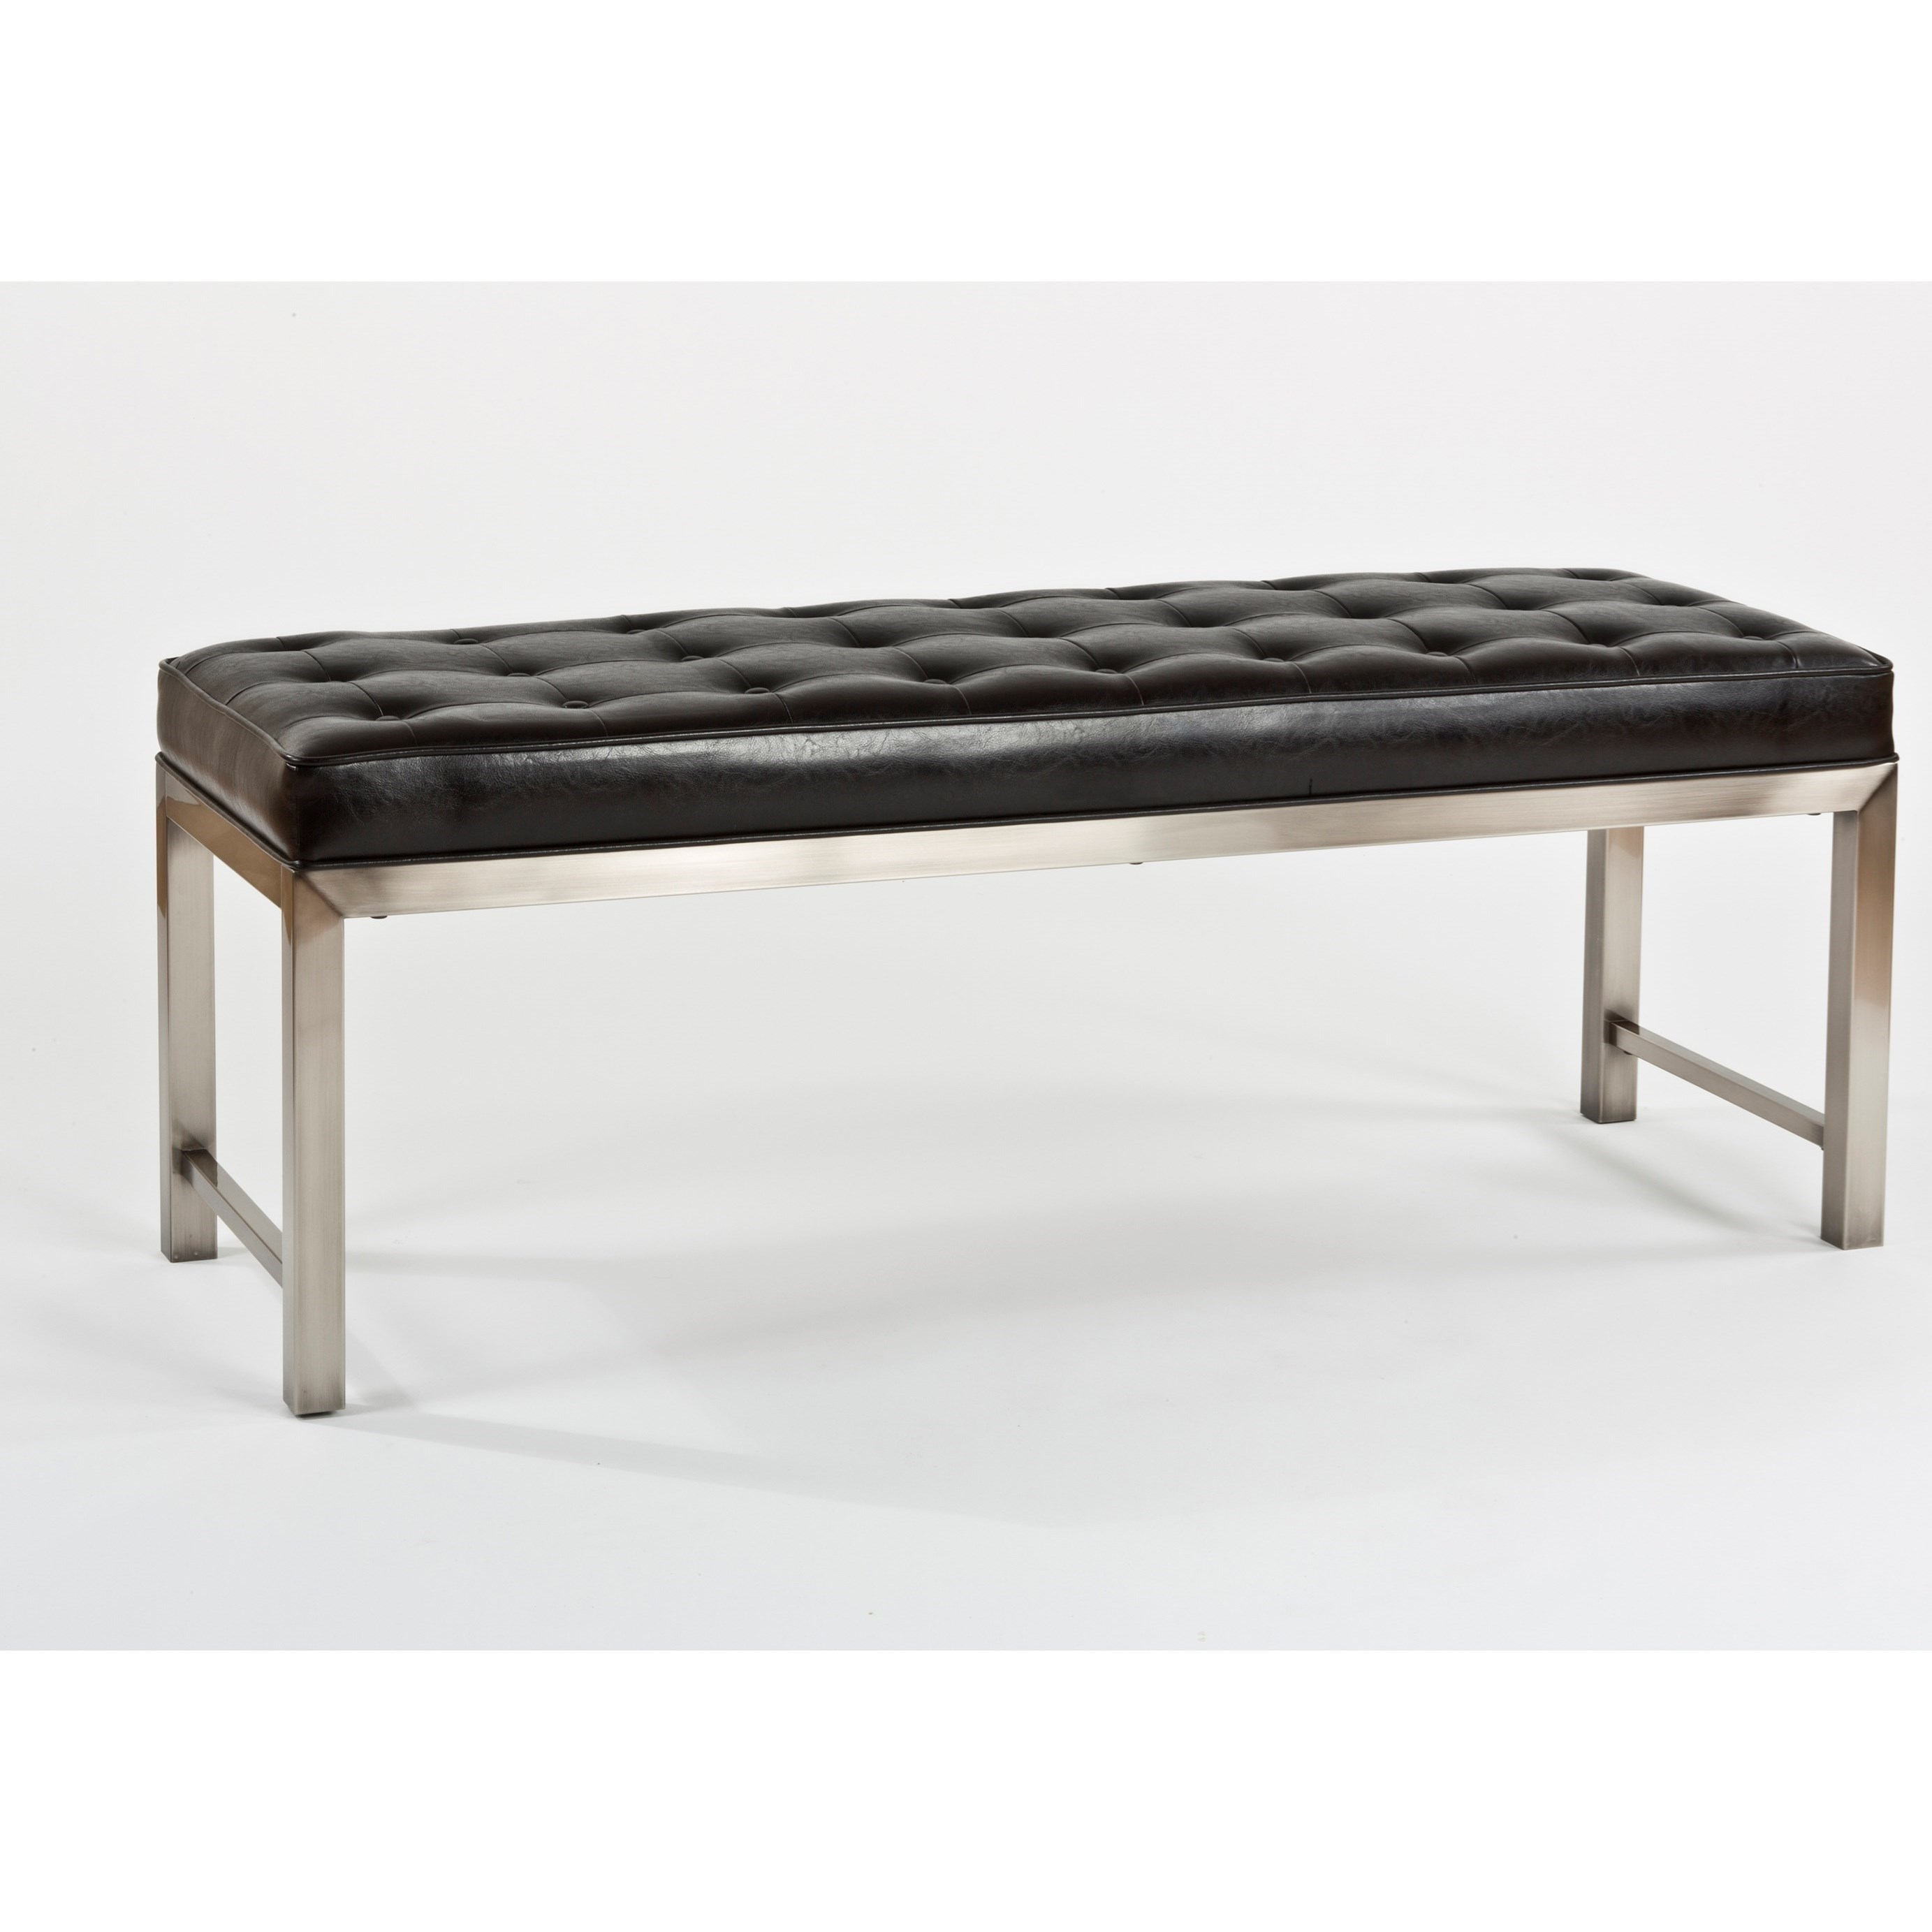 Hillsdale Accents Bench - Item Number: 1057-000